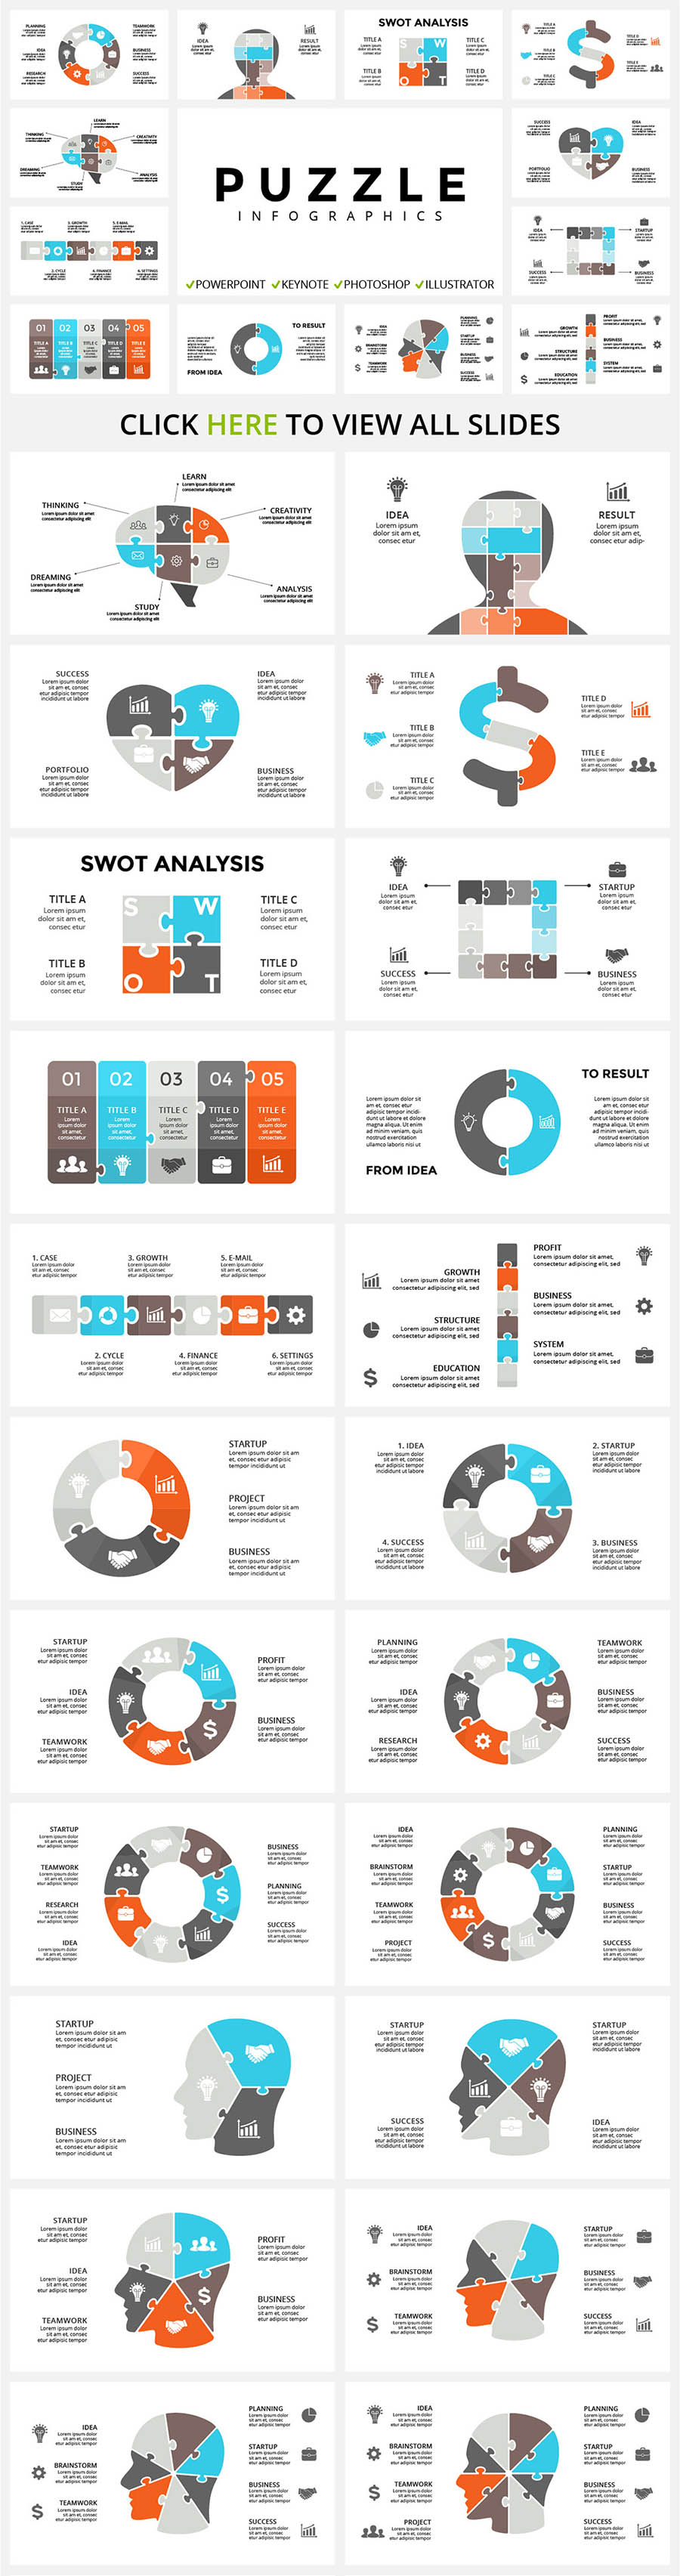 Cool Infographics in 2020. Best Infographics Bundle: 1500 items - $29 - 24 PUZZLE